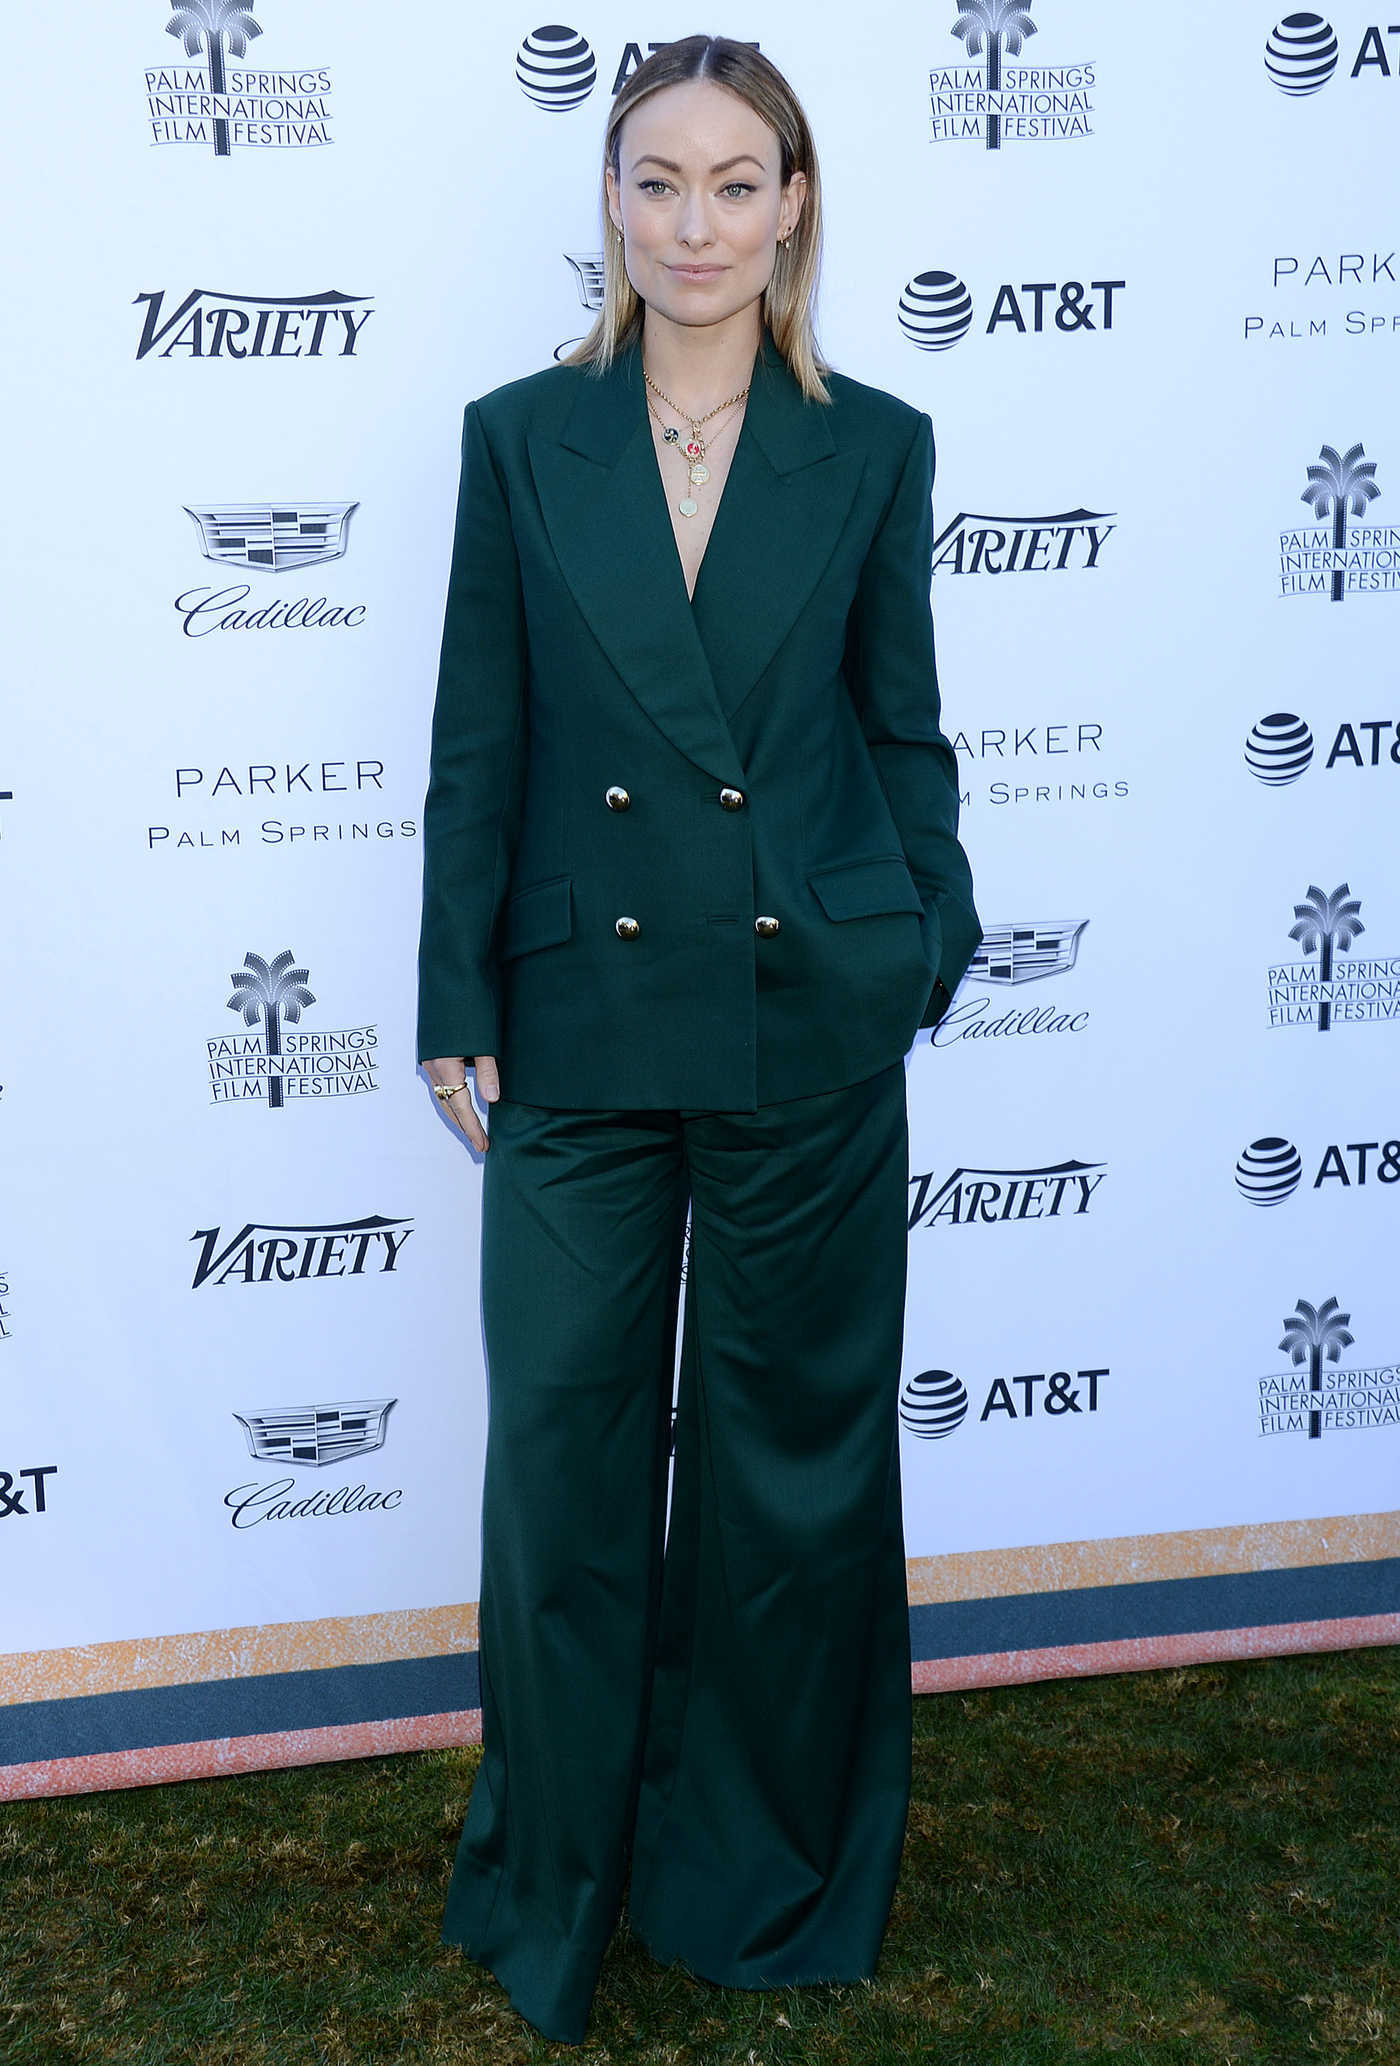 Olivia Wilde Attends 2019 Variety's Creative Impact Awards in Palm Springs 01/04/2019